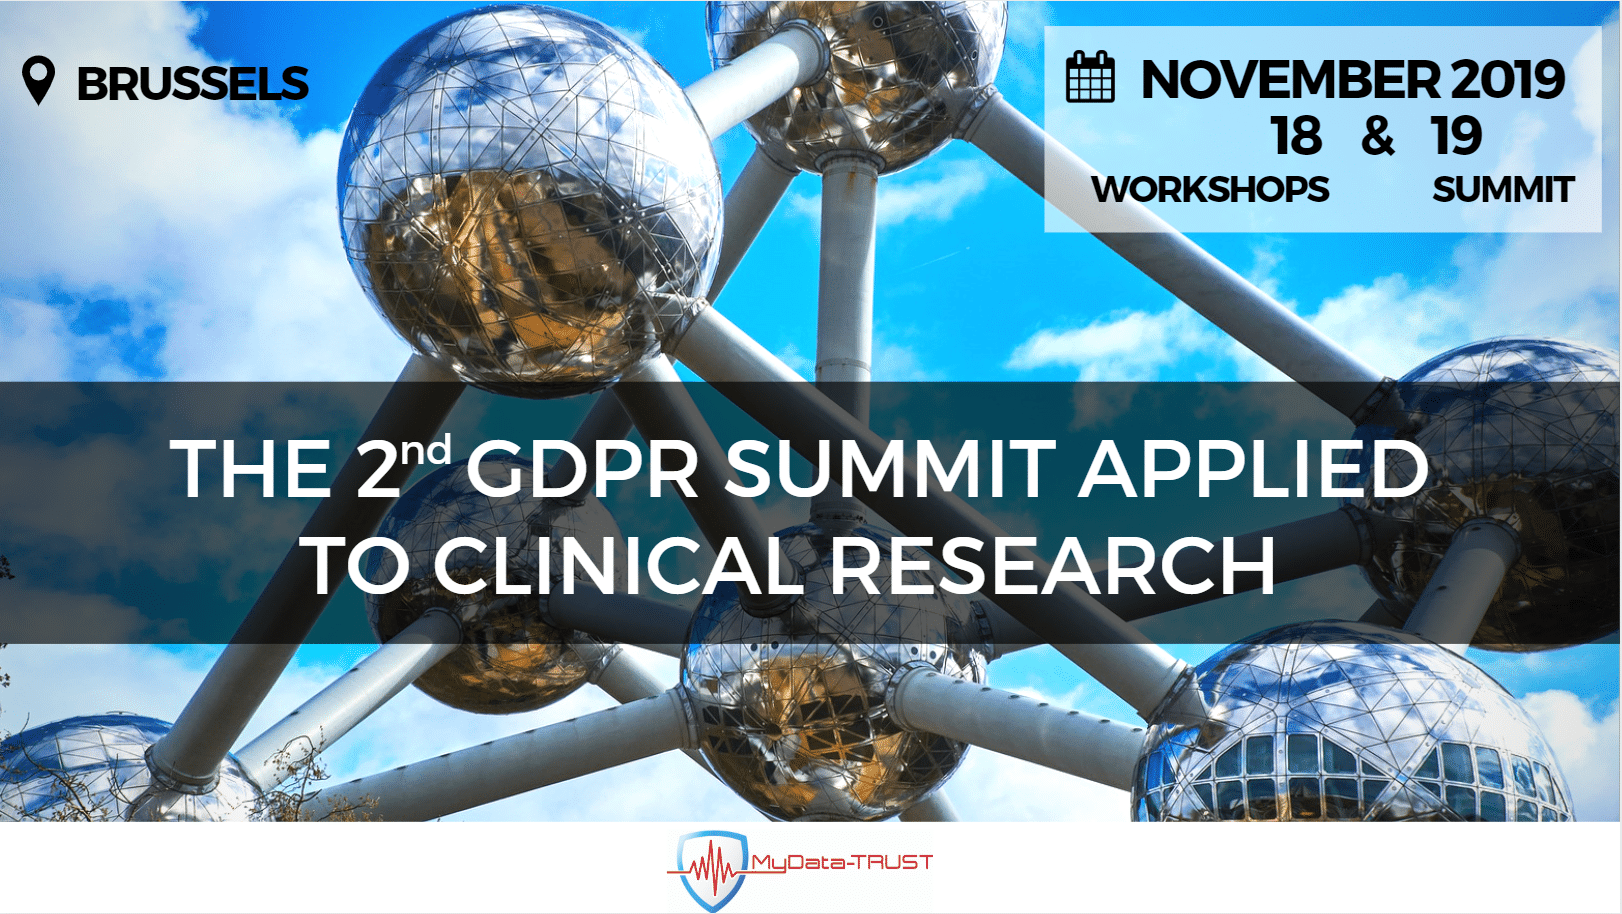 Image 2nd GDPR SUMMIT in CR